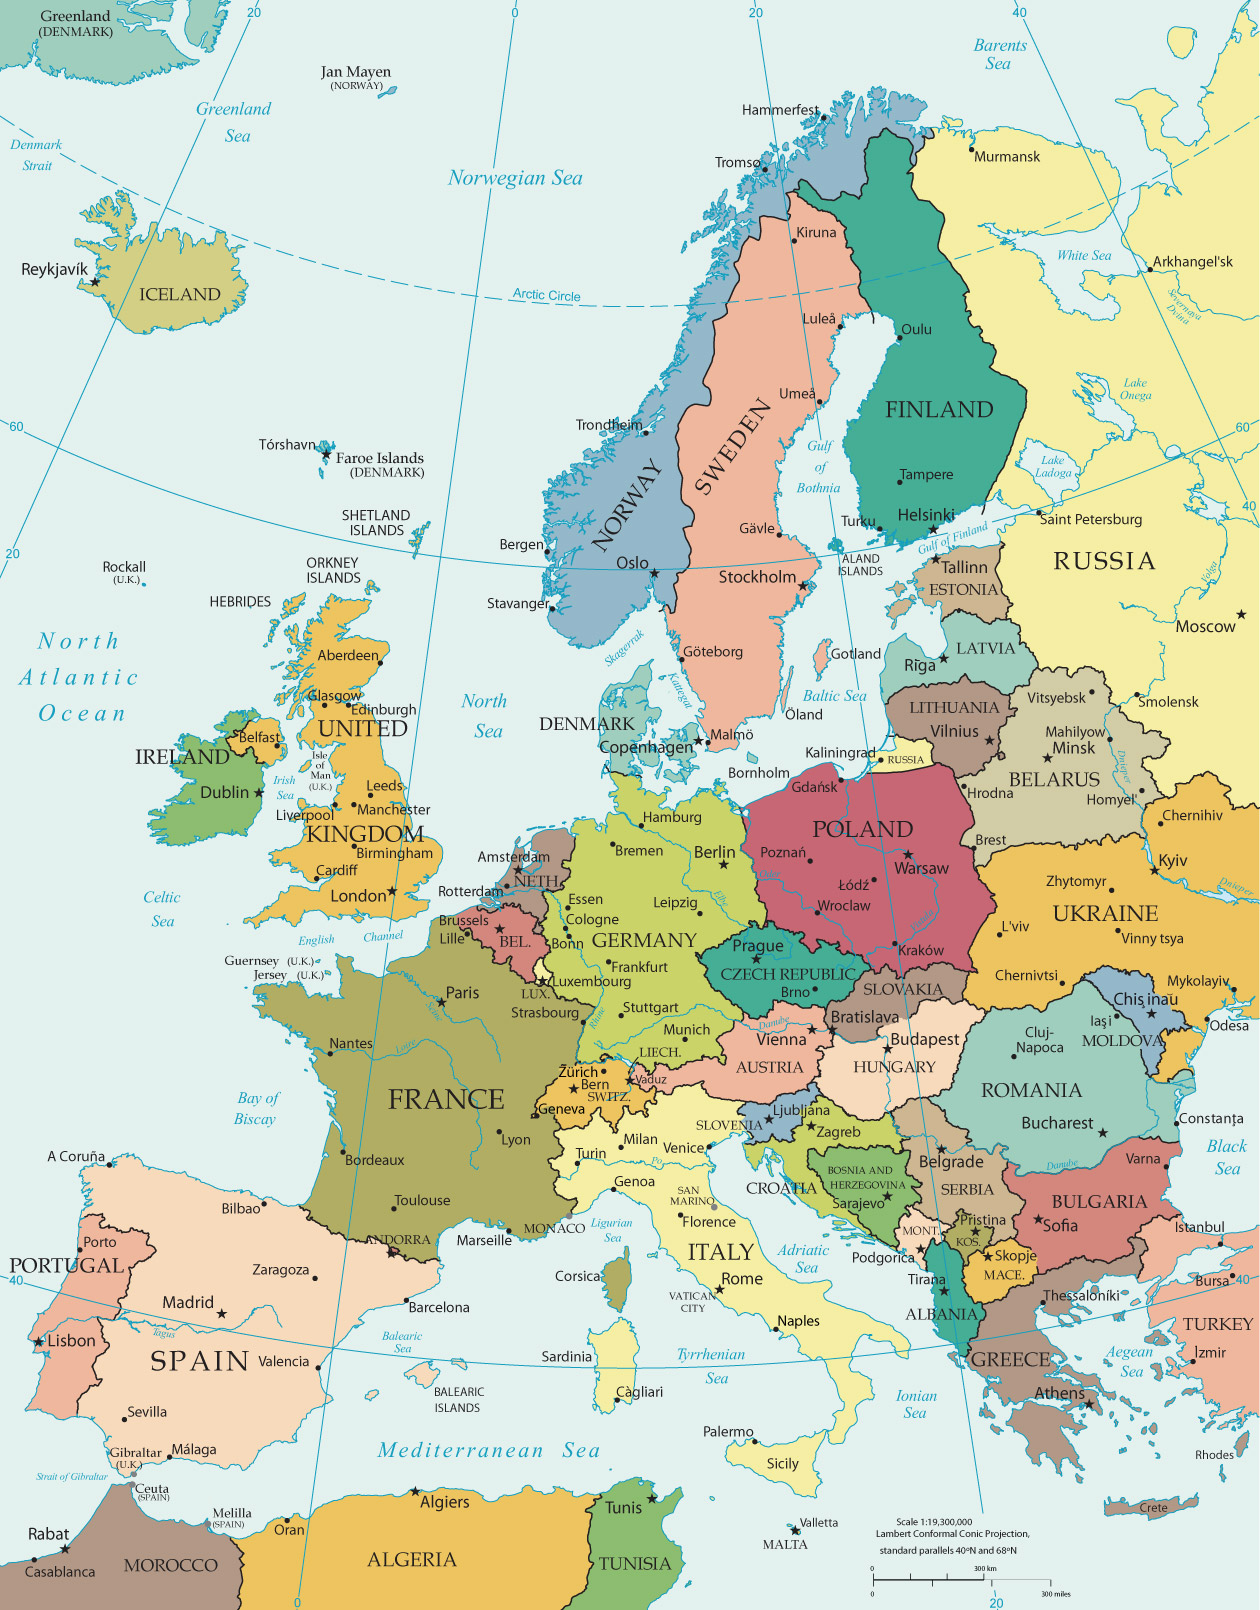 Map Of Europe And Turkey.Political Map Of Europe Countries